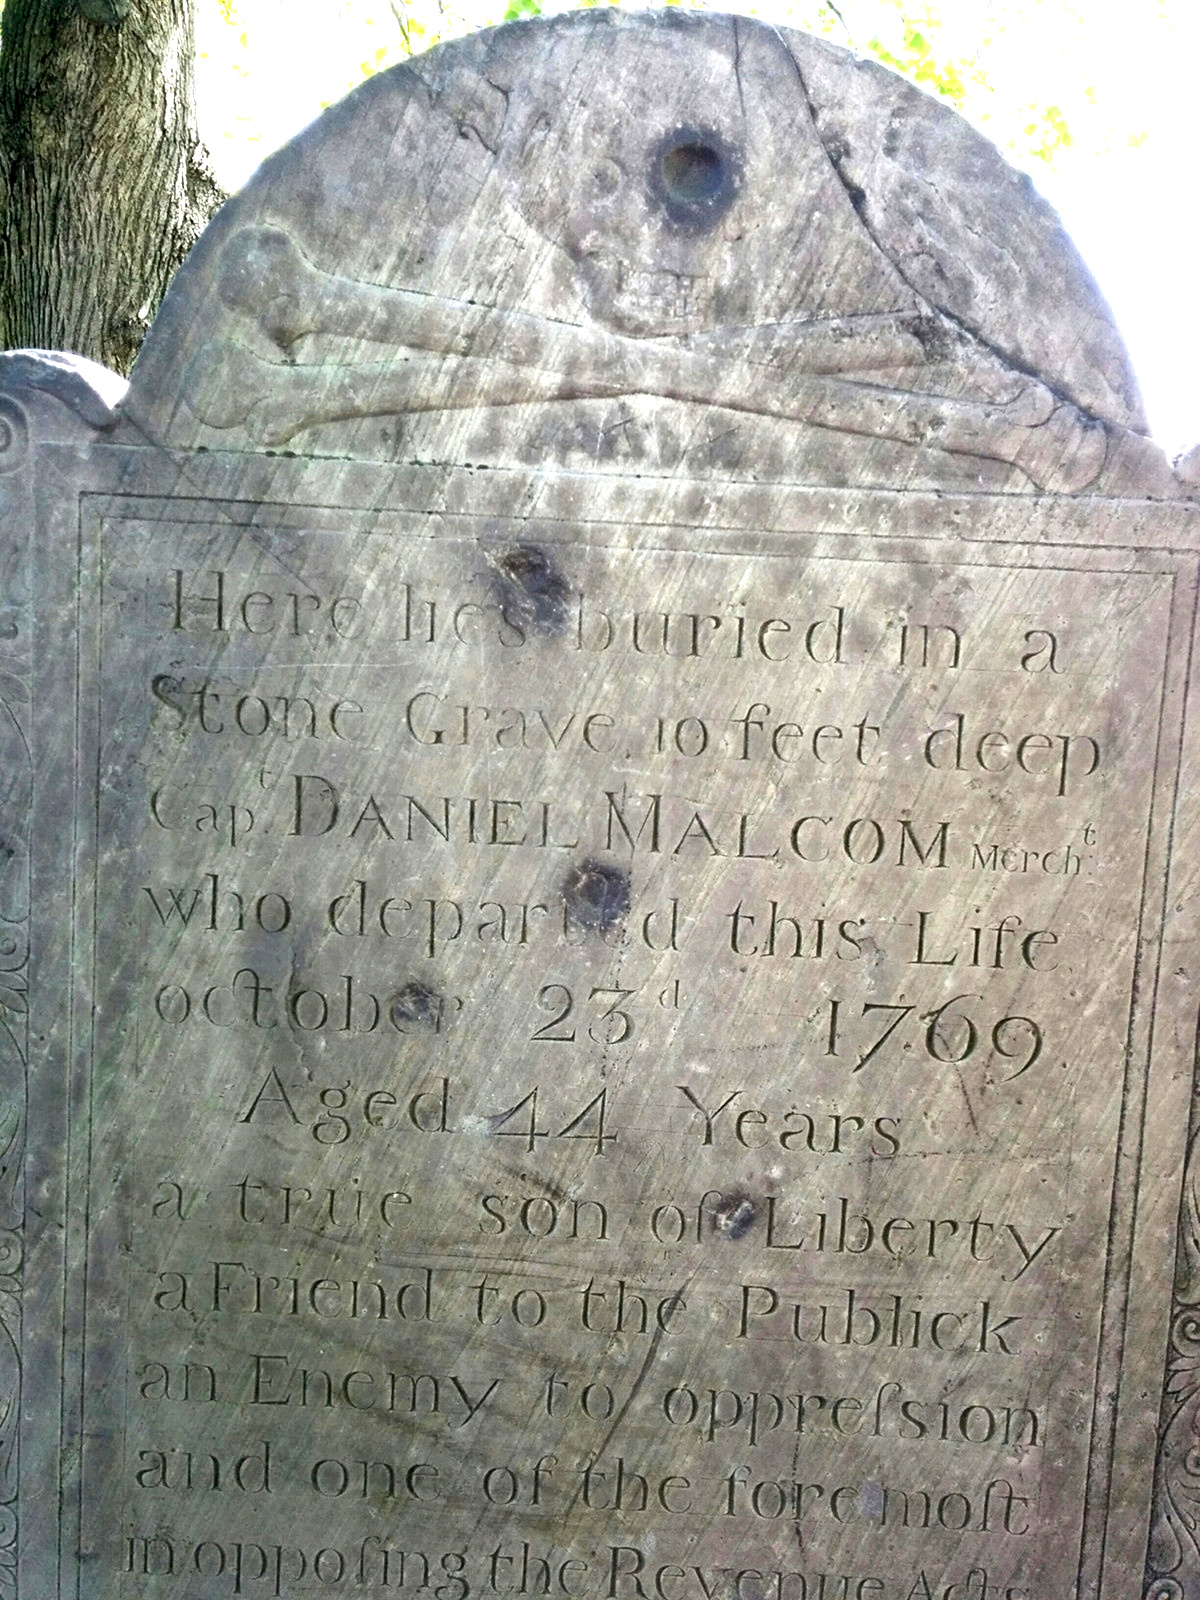 Daniel Martin gravestone, Copp's Hill Burial Ground